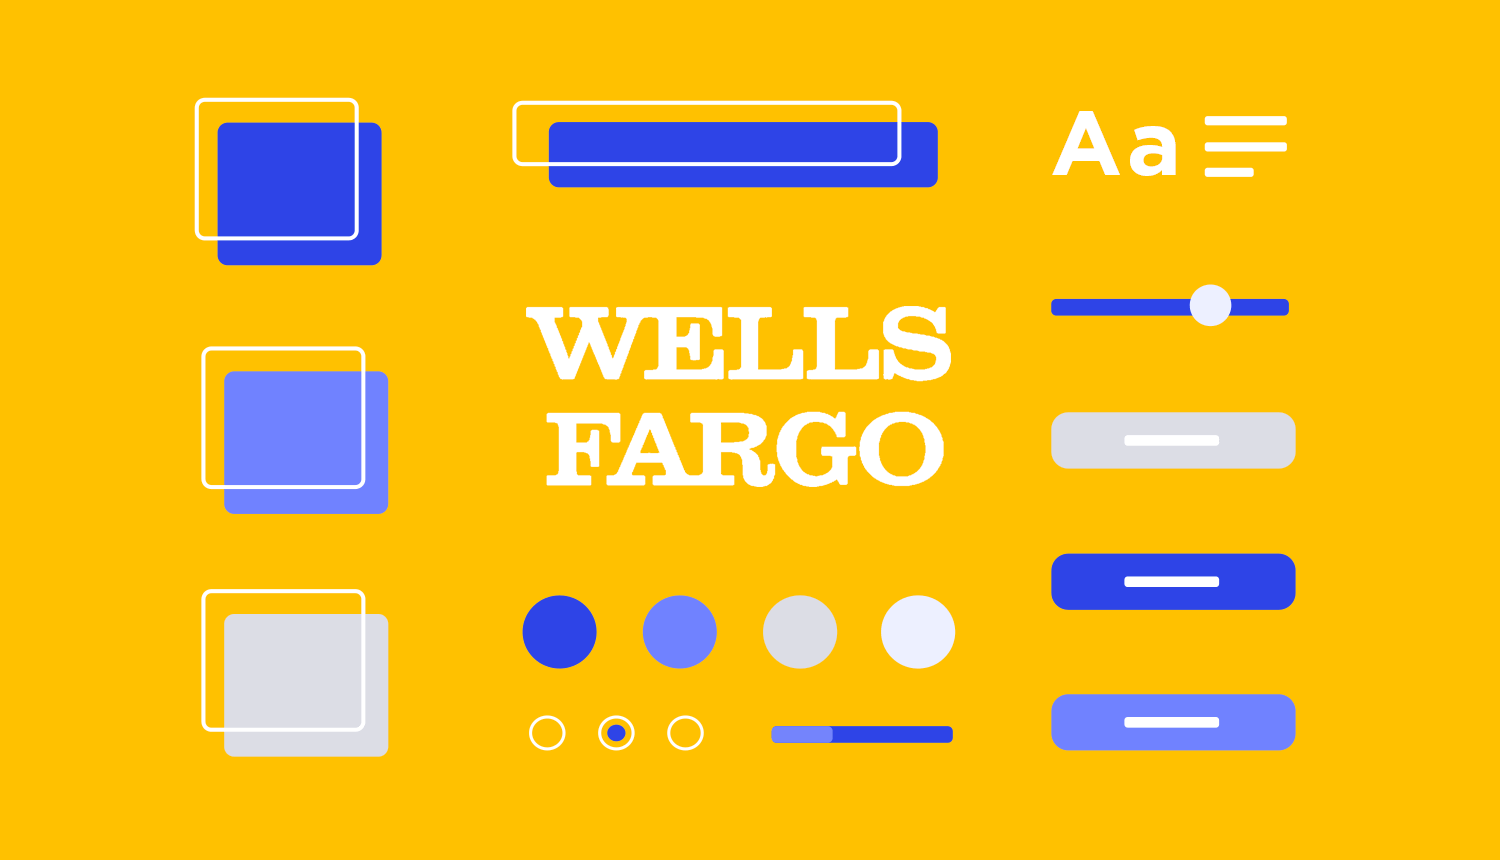 presentation by wells fargo on their design system and ux design